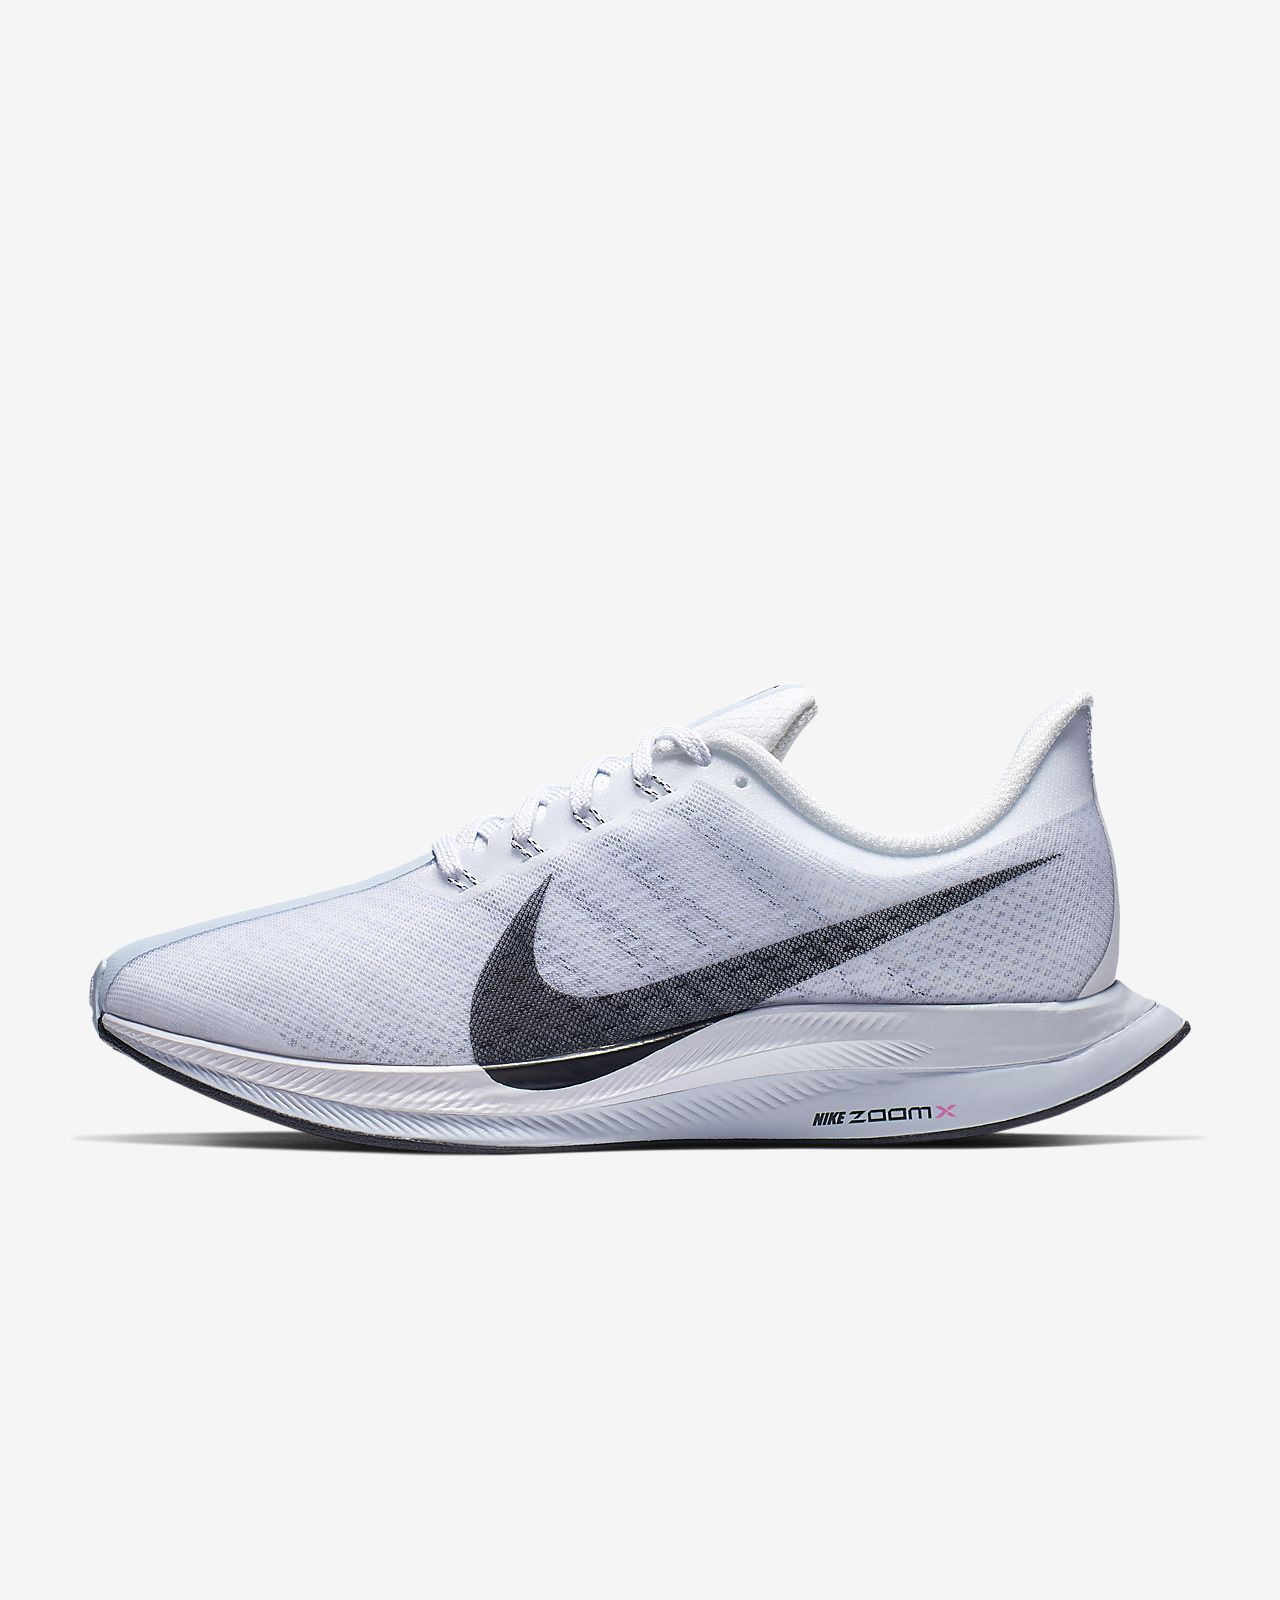 399676882e79 Nike Zoom Pegasus Turbo Women s Running Shoe. Nike.com AU